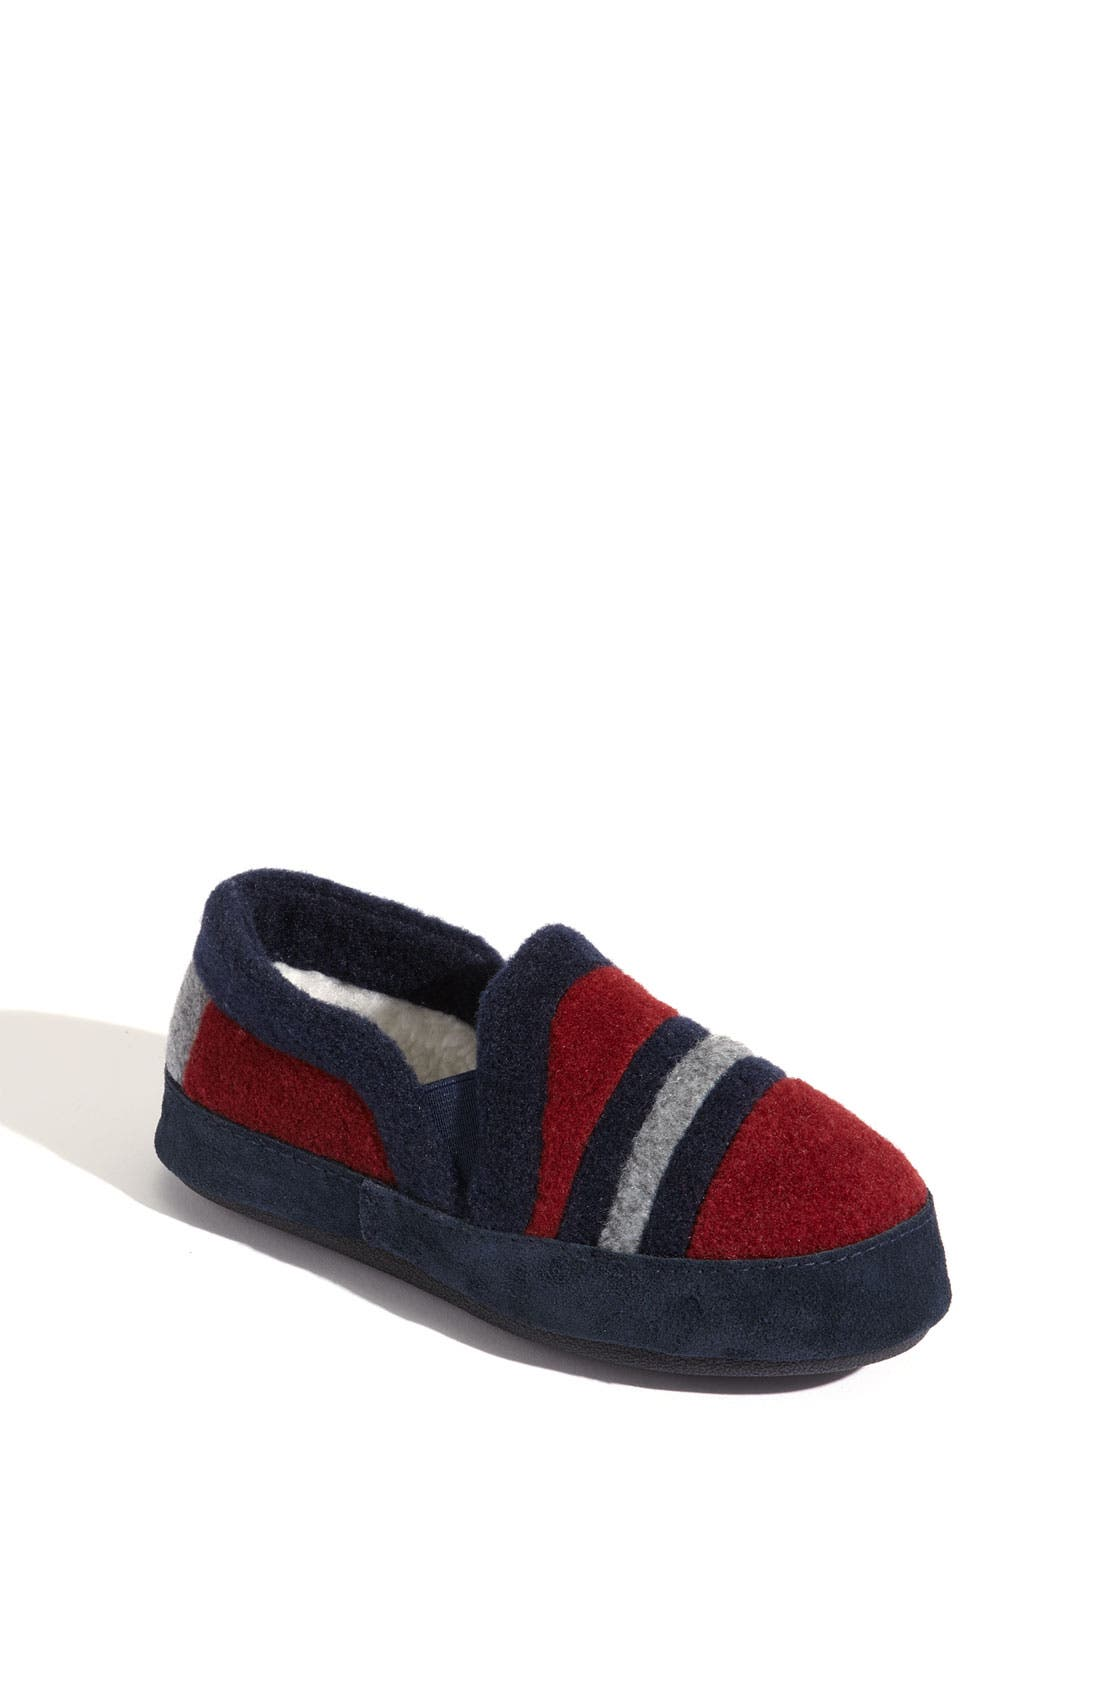 Alternate Image 1 Selected - Acorn 'Colby Moc' Slipper (Toddler, Little Kid & Big Kid)